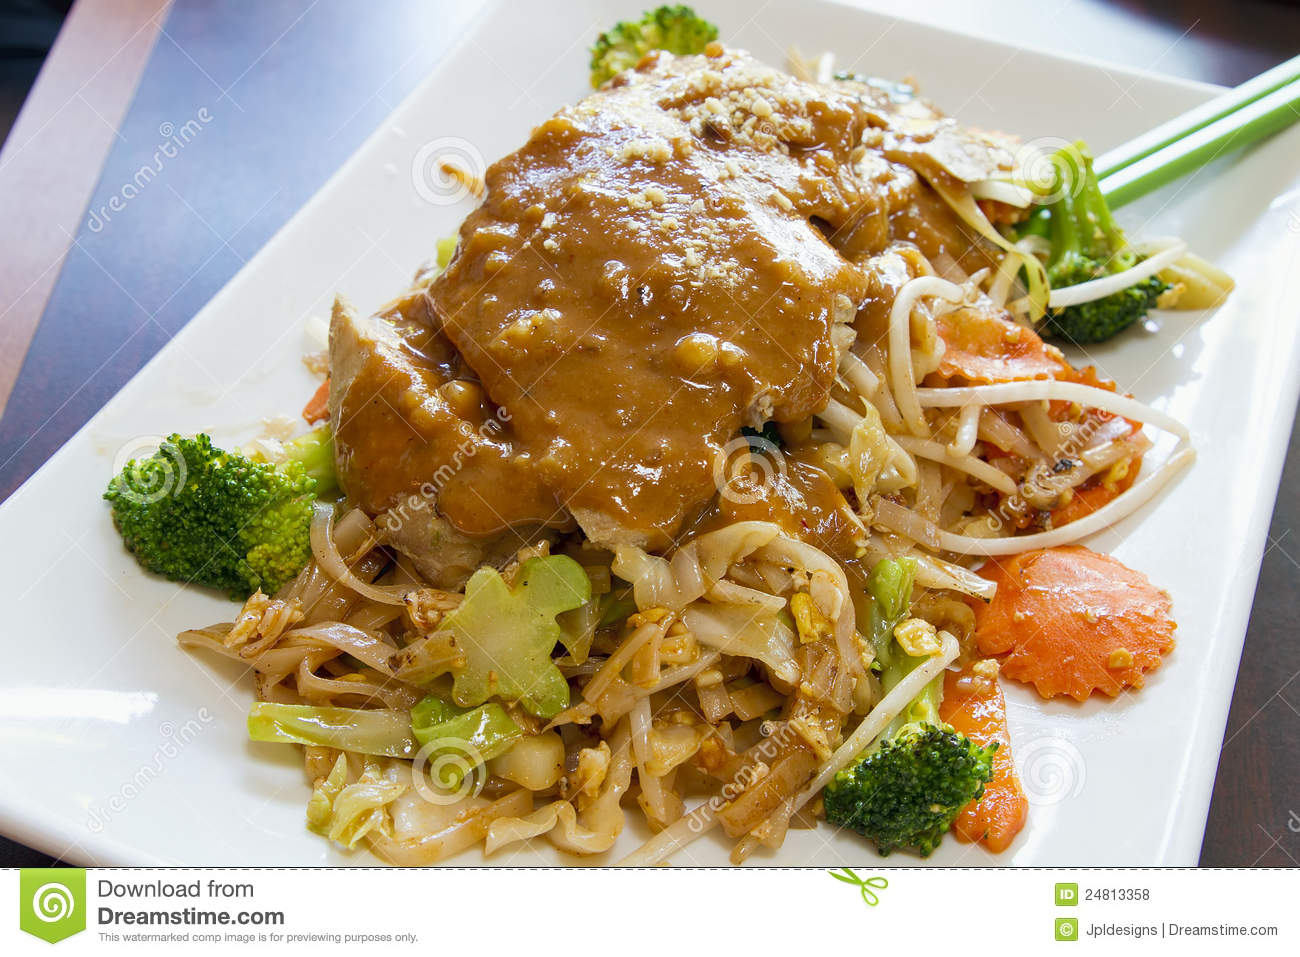 ... Grass Chicken and Peanut Sauce with Broccoli Carrots Bean Sprouts